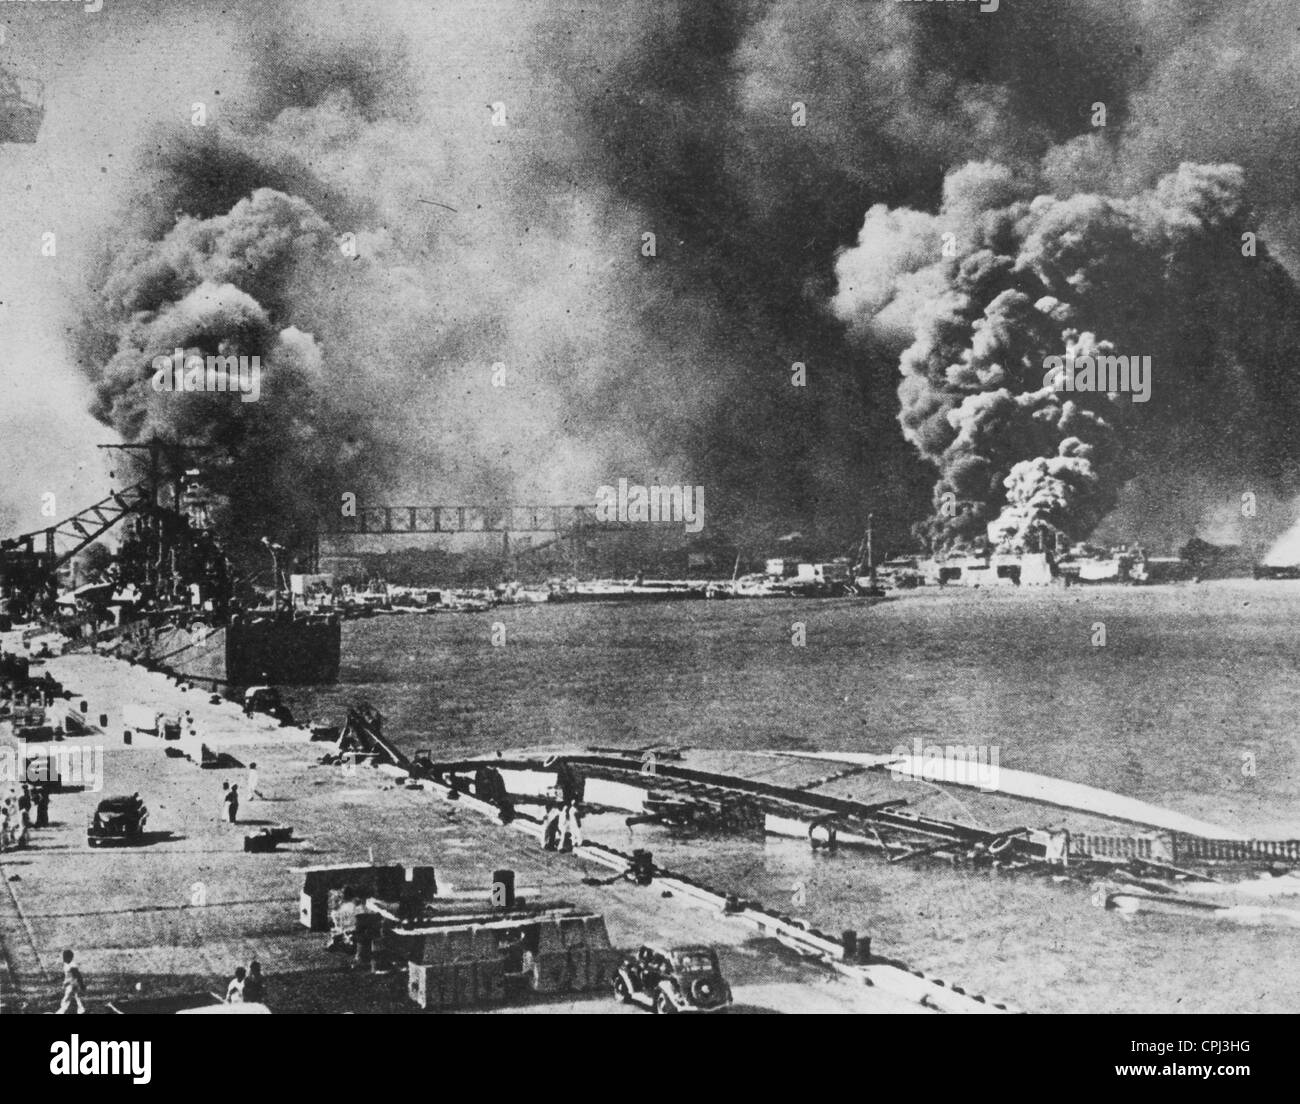 On Pearl Harbour B W Photo Stock Photo